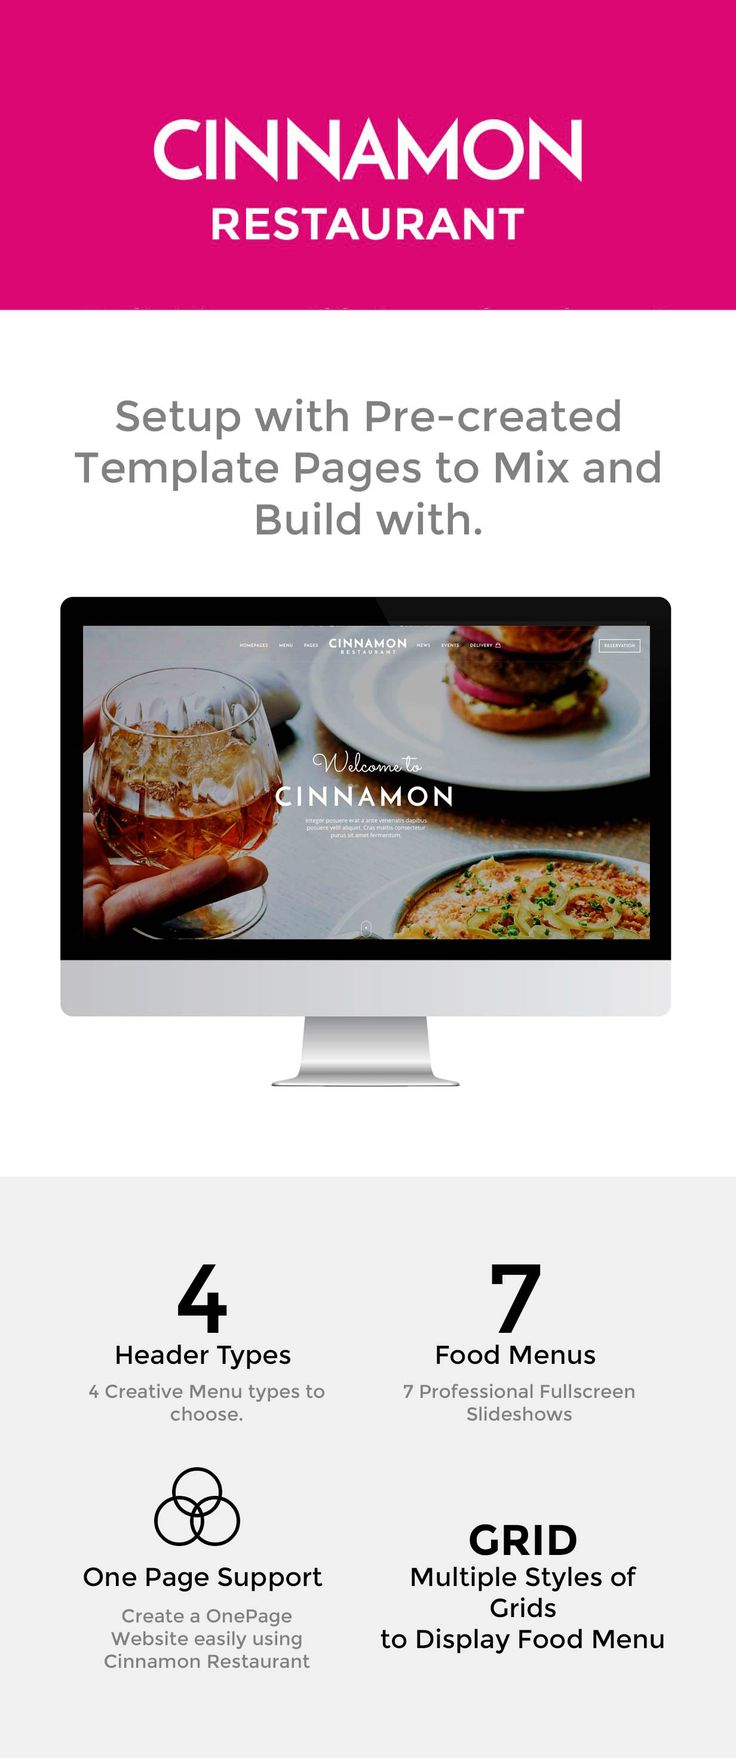 Cinnamon Restaurant Theme is a responsive multipurpose restaurant WordPress theme which is designed for all types of food business related websites. It can also be used to create a One Page restaurant website. The theme can be used for any food business such as eatery, food joint, barbecues, small to large restaurants, bakery, cafe, coffee, grill-houses, fast-food, and pizzerias. Restaurant reservation button is easily accessbile for the visitor either as a modal slide window with form or…